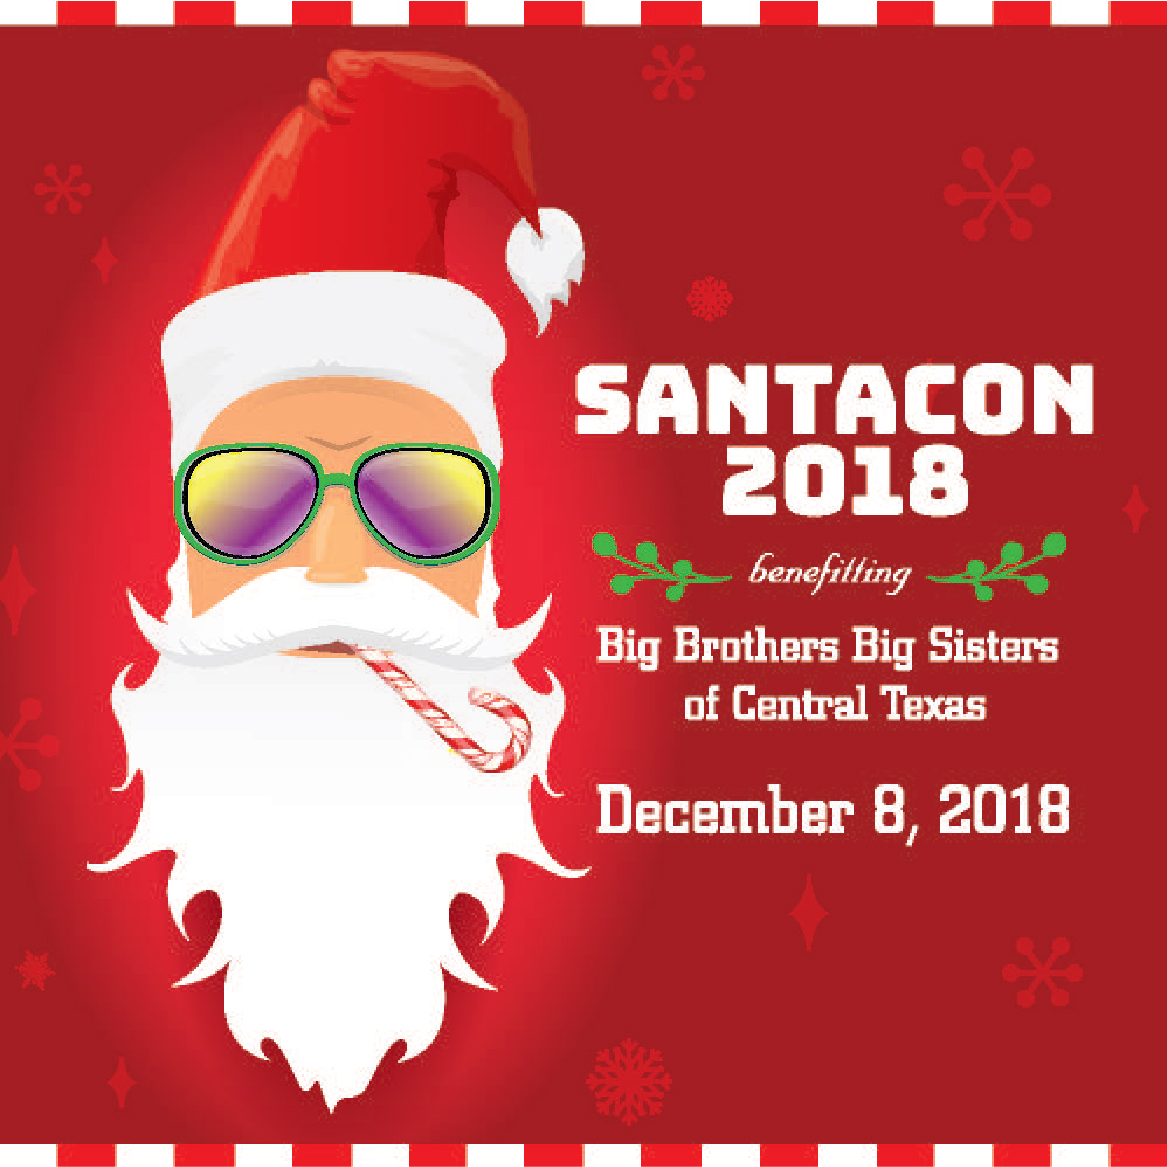 SantaCon 2018 - Benefitting Big Brothers Big Sisters of Central Texas